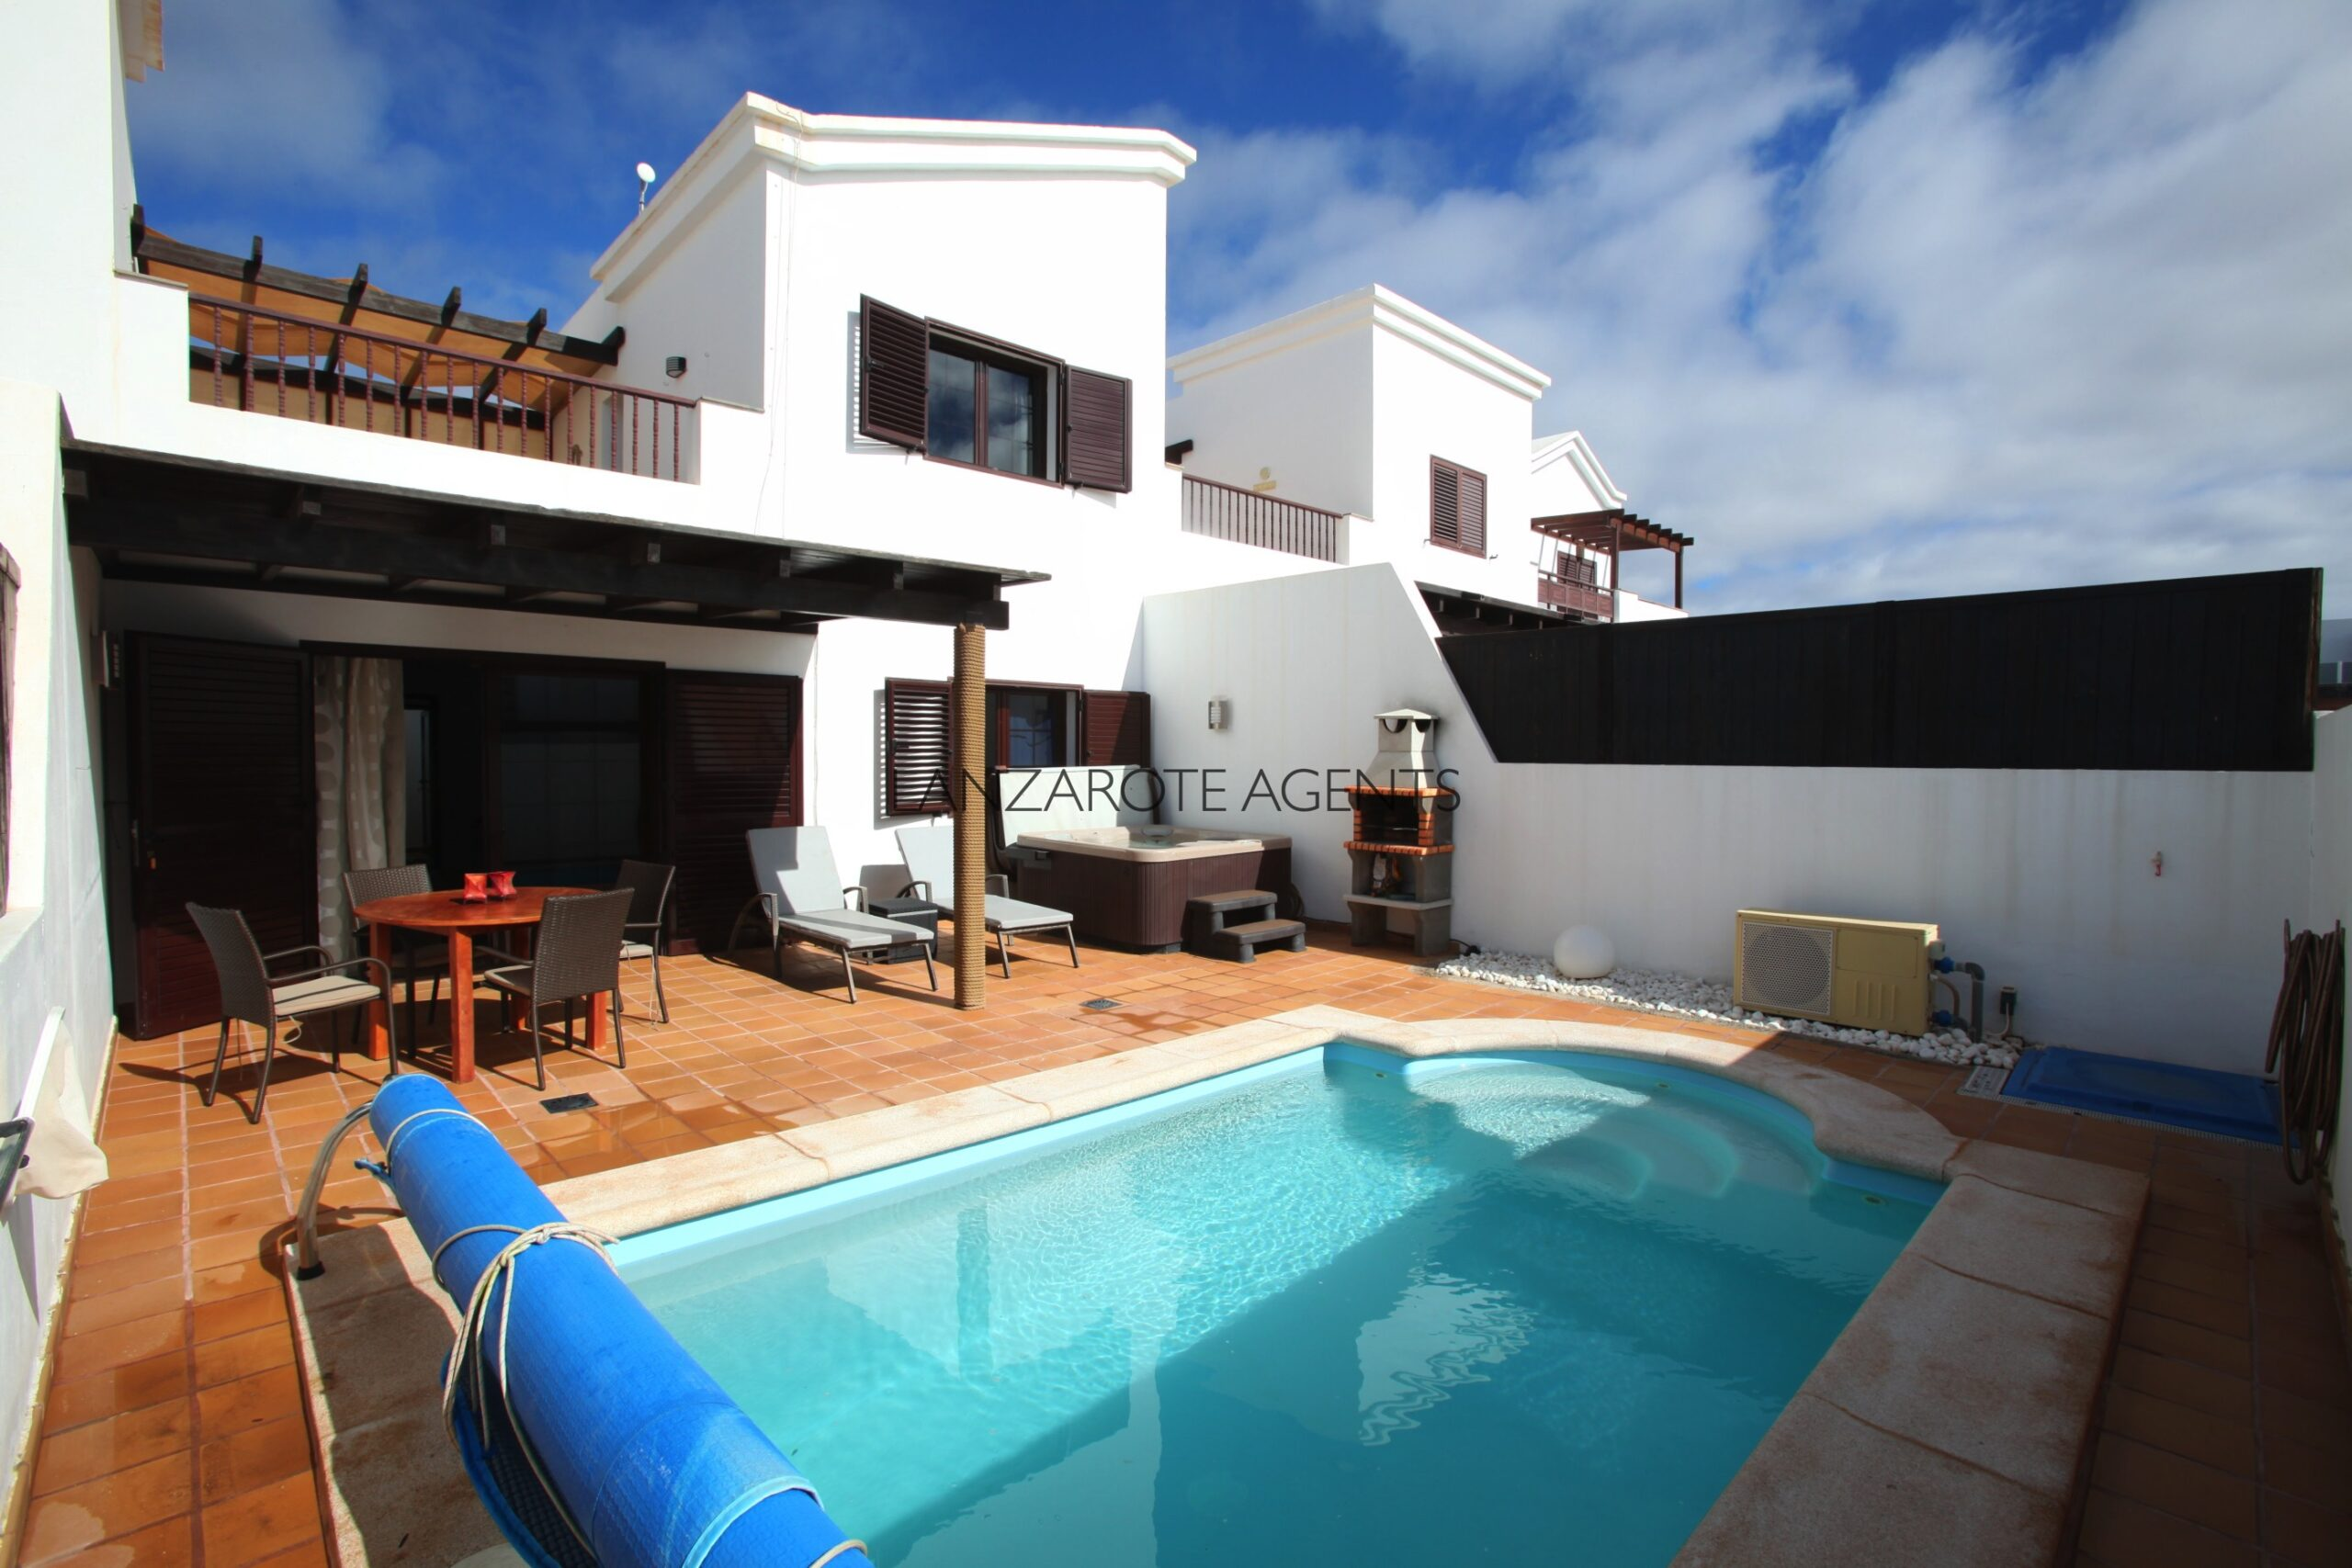 Fantastic Two Bedroom Villa With Private Pool, Hot-Tub, Tourist License Vv and Future Bookings